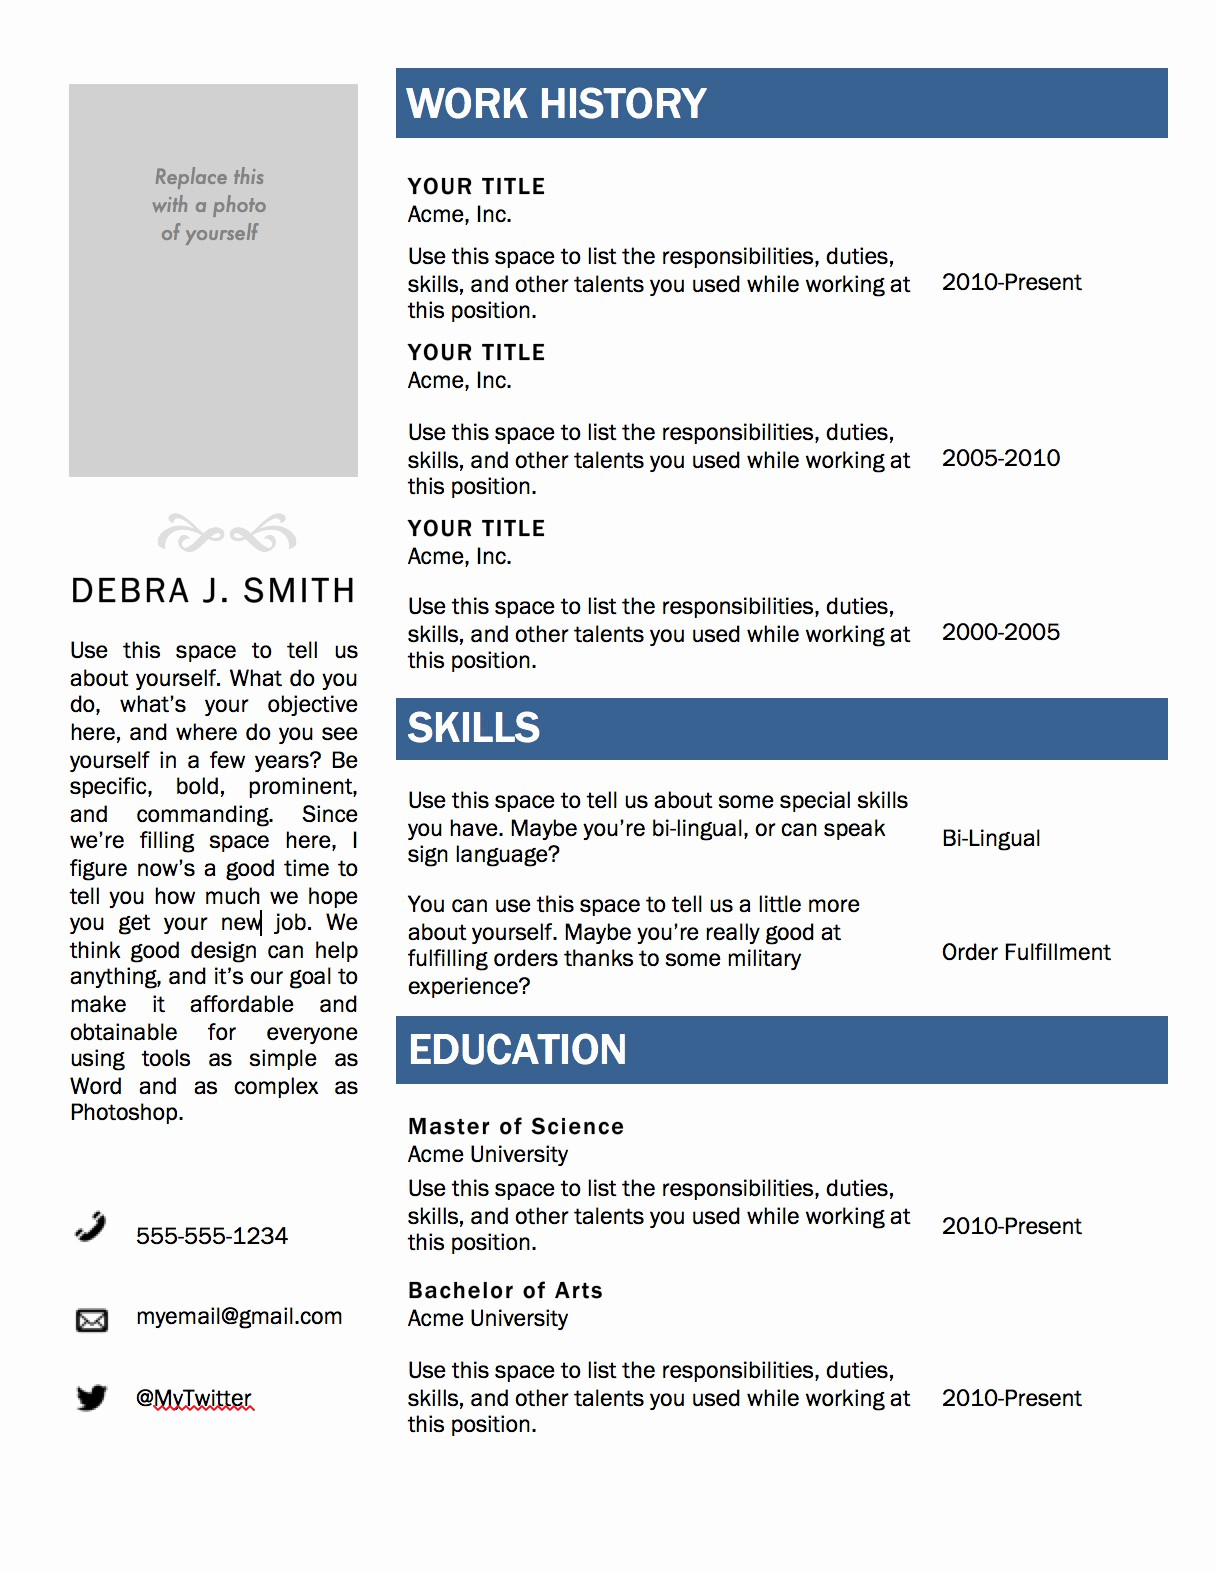 Microsoft Office Word Templates Resume Awesome Free Microsoft Word Resume Template — Superpixel